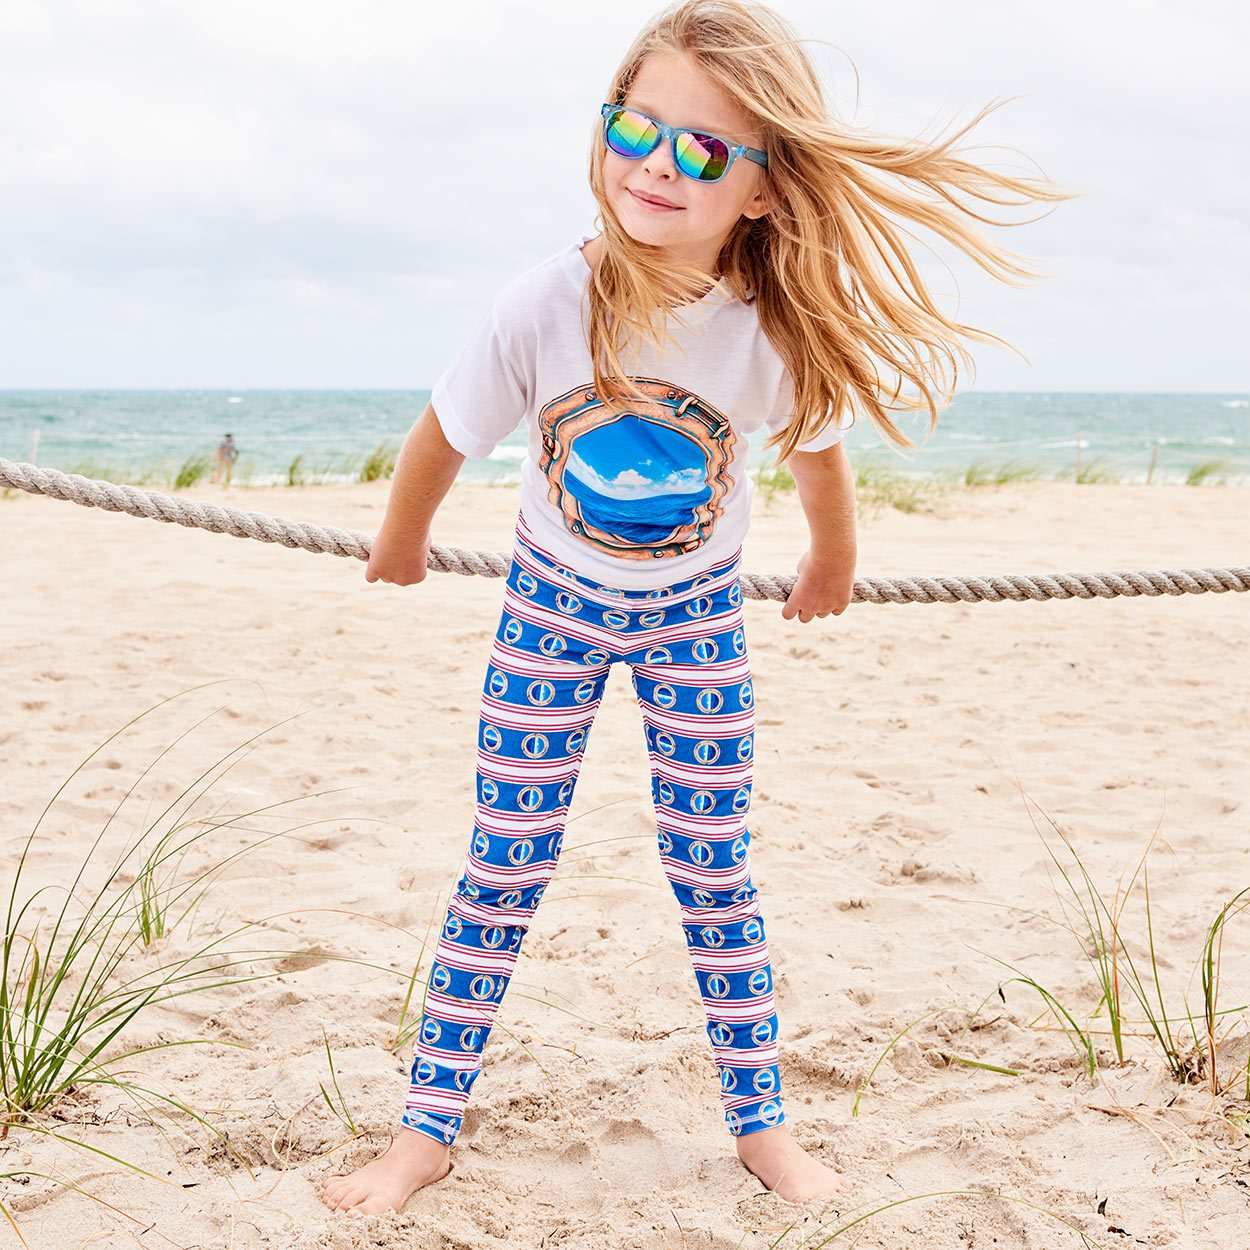 Mariner Hybrid Youth Legging Upf50 Girls Size 6 12 Red White Blue Stripes Denim Modern Mariner Girl On The Beach Wearing Sunglasses Playing With A Rope Sunpoplife